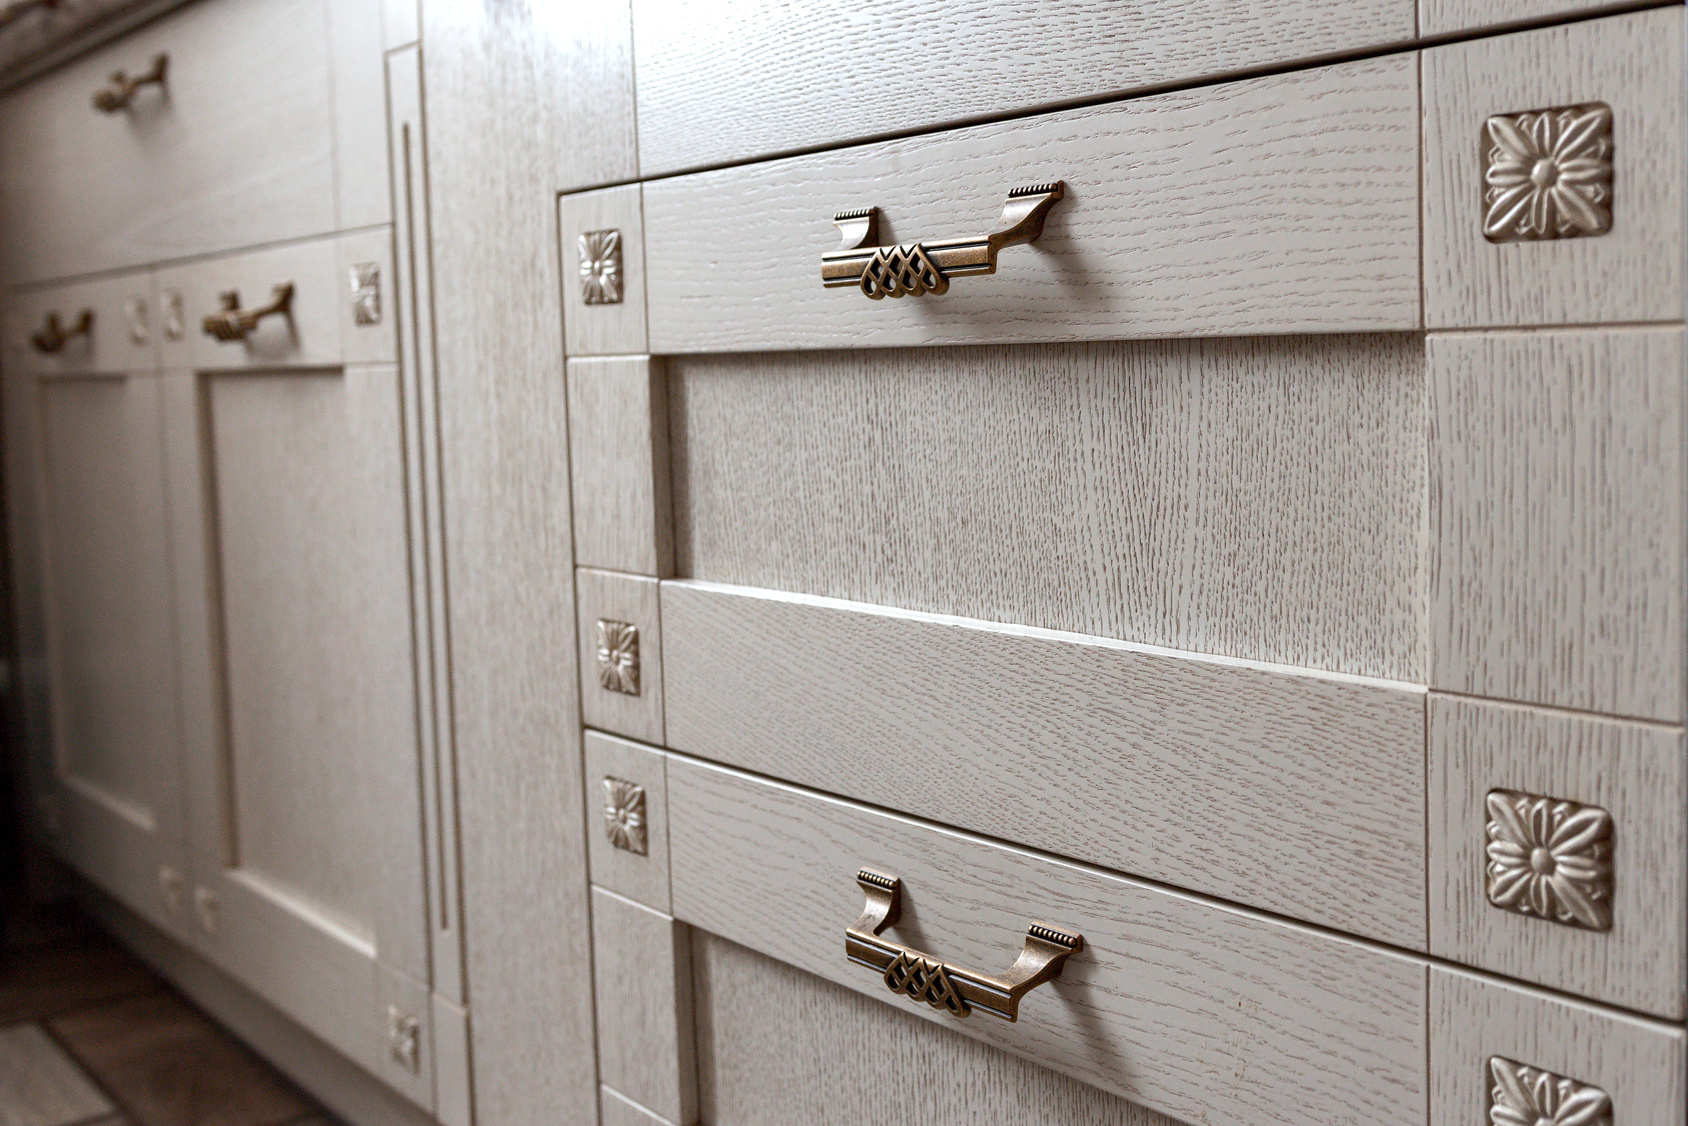 7 Kitchen Cabinet Handles To Use In Your Kitchen Design